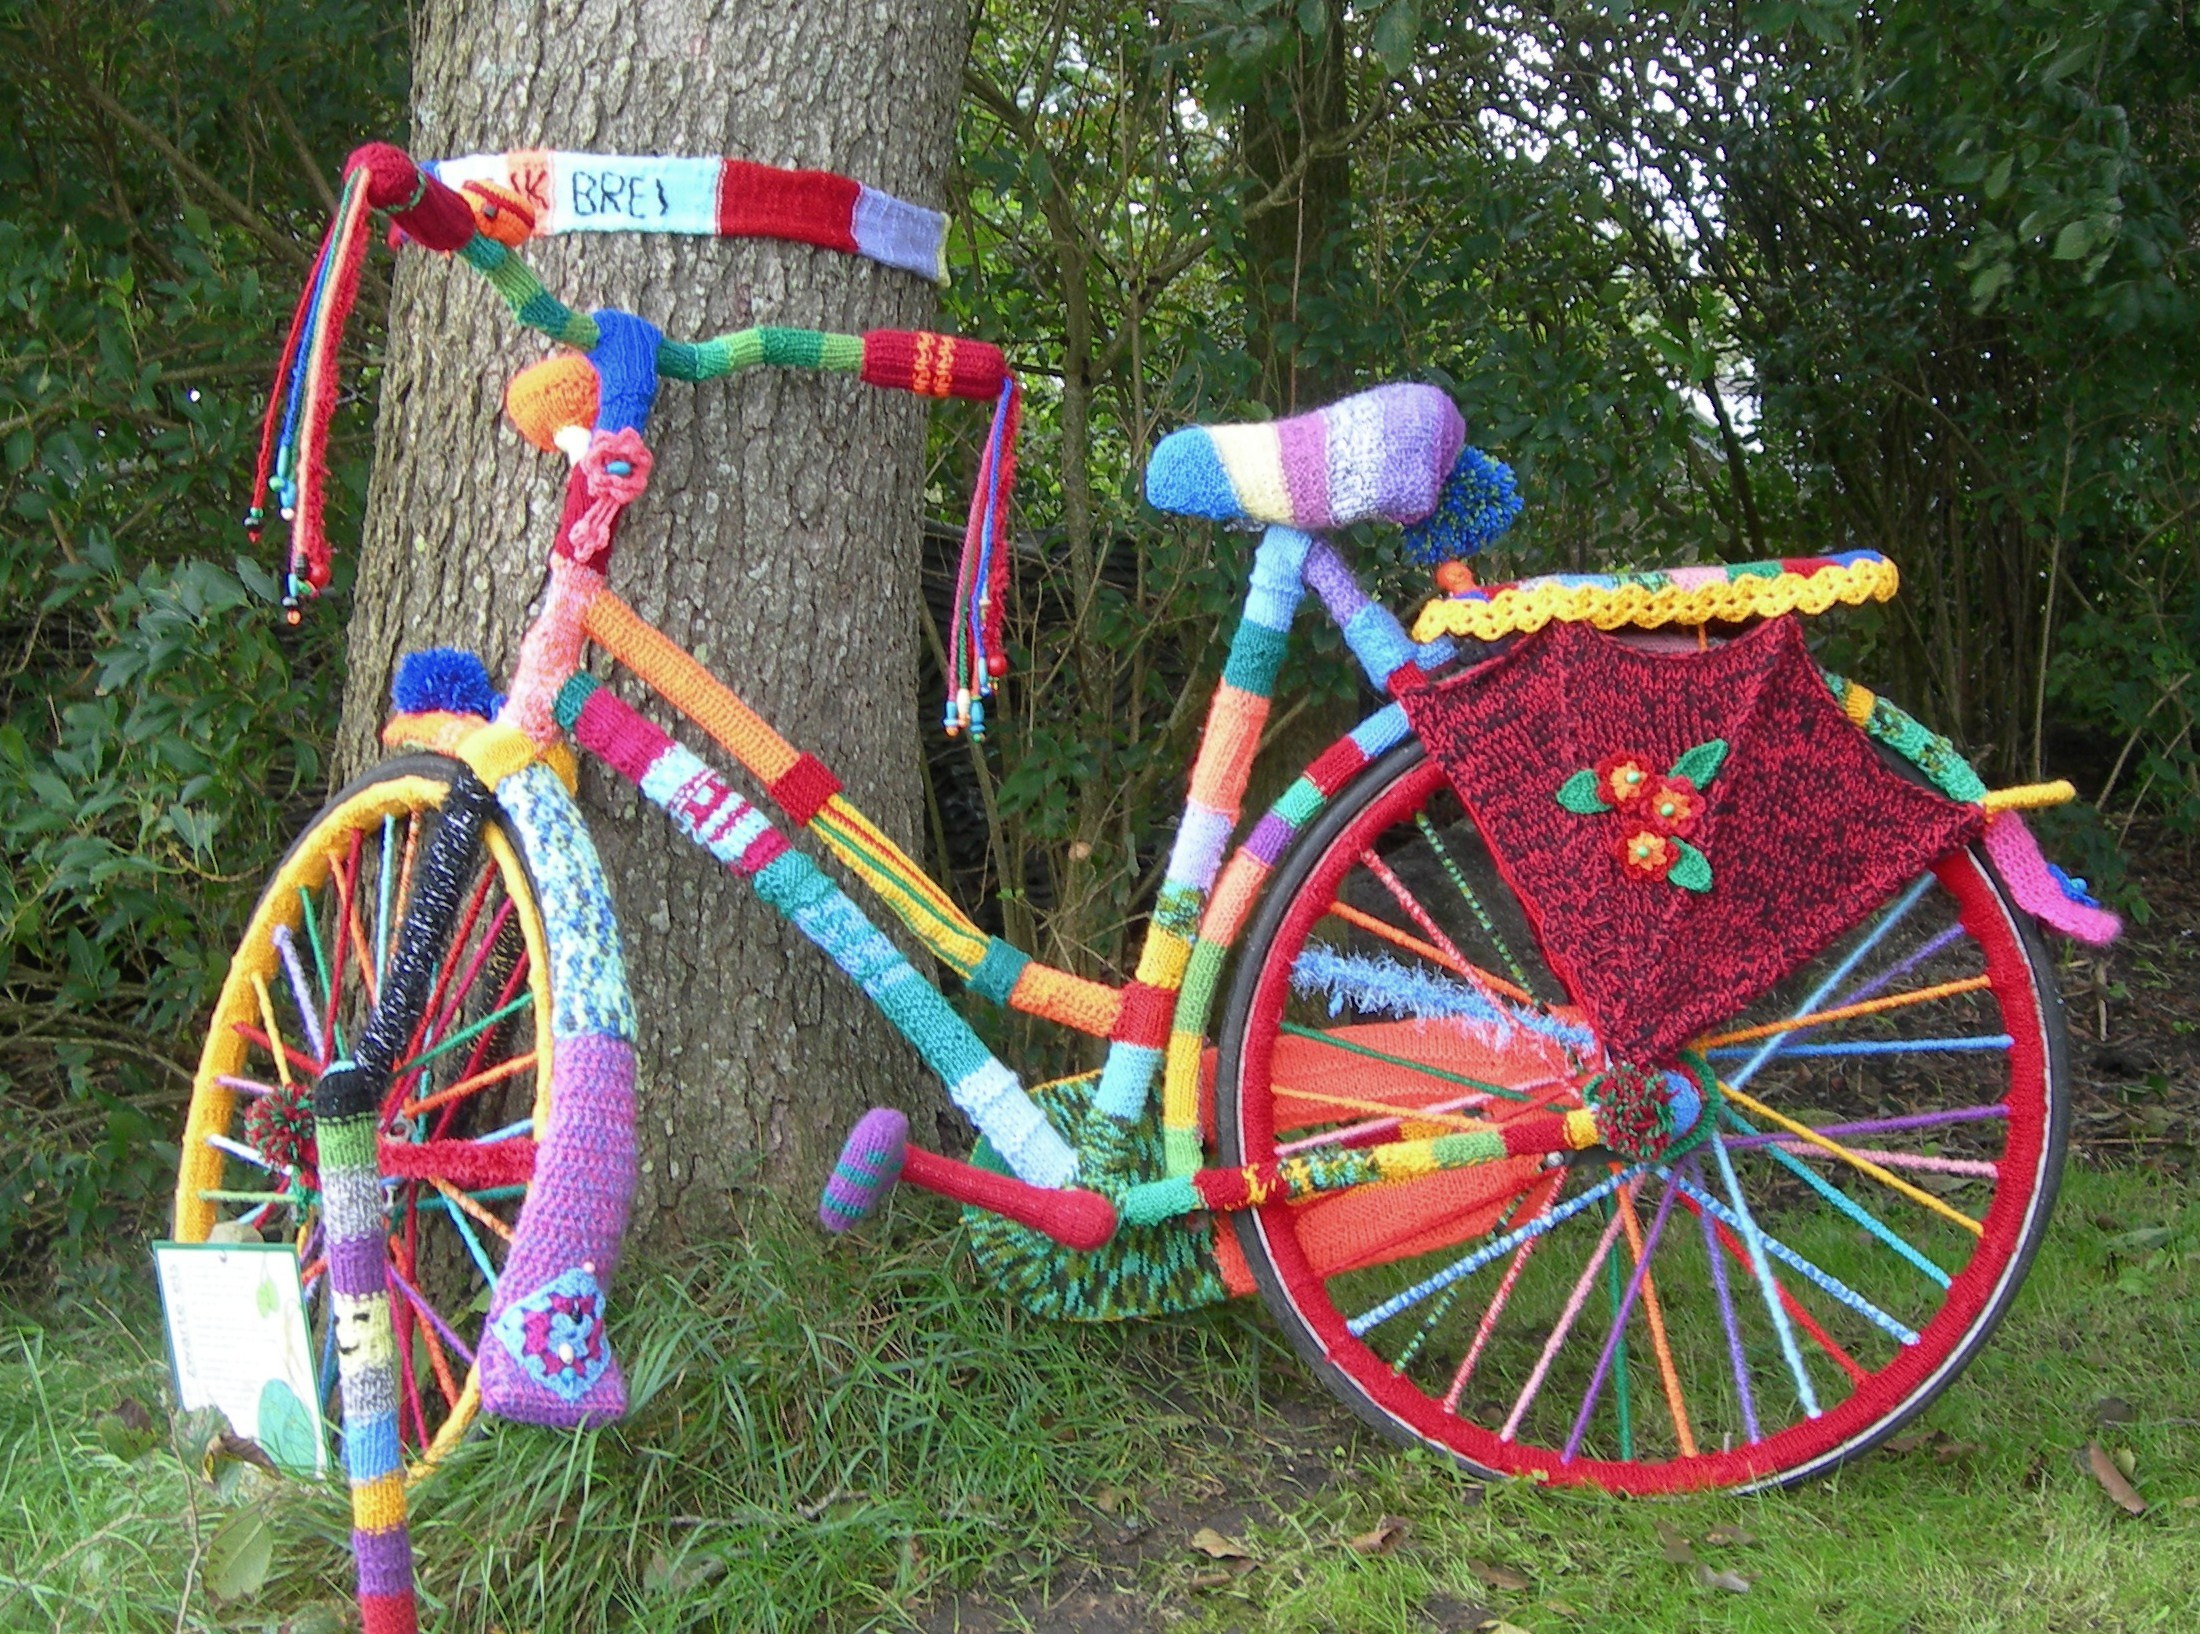 A yarnbombed bicyle